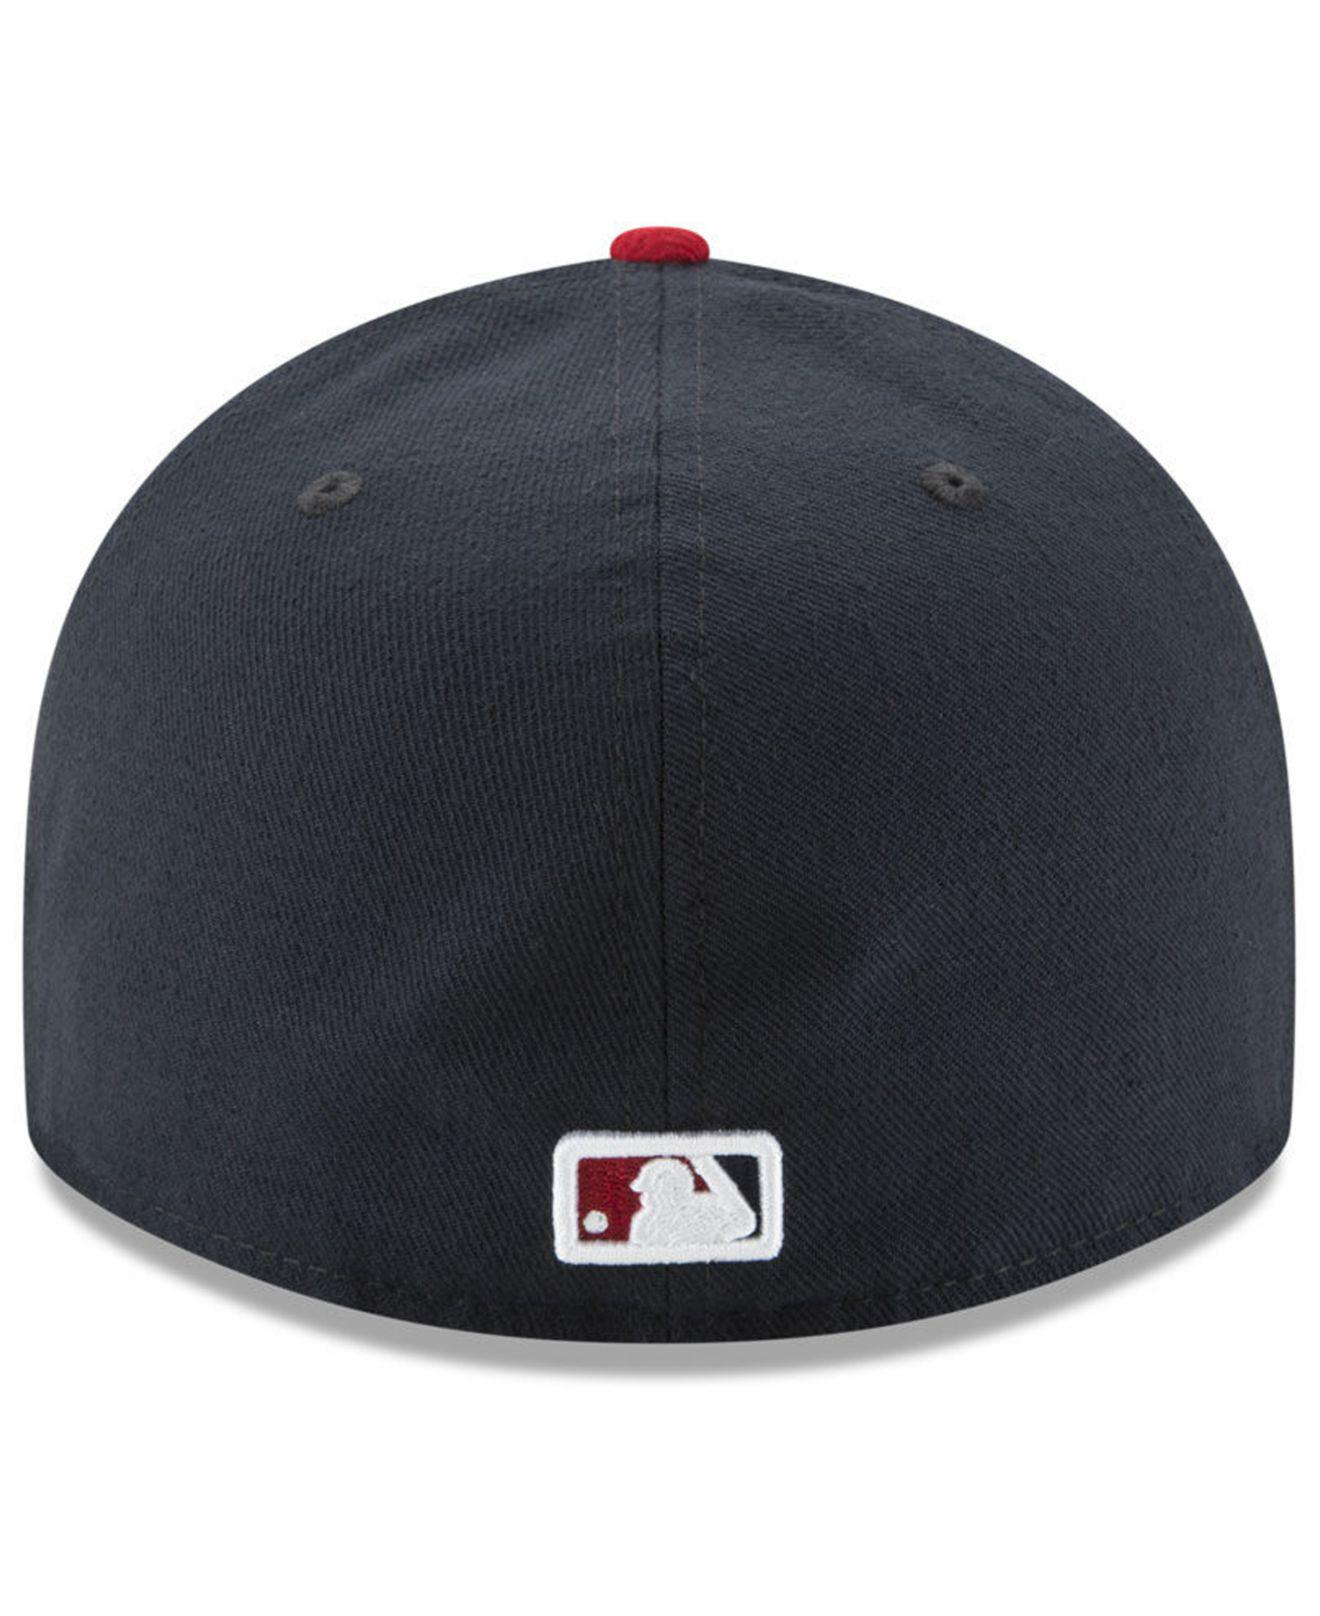 finest selection 7e004 d7020 KTZ - Blue Washington Nationals Washington All Star Game Patch Low Profile  59fifty Fitted Cap for. View fullscreen